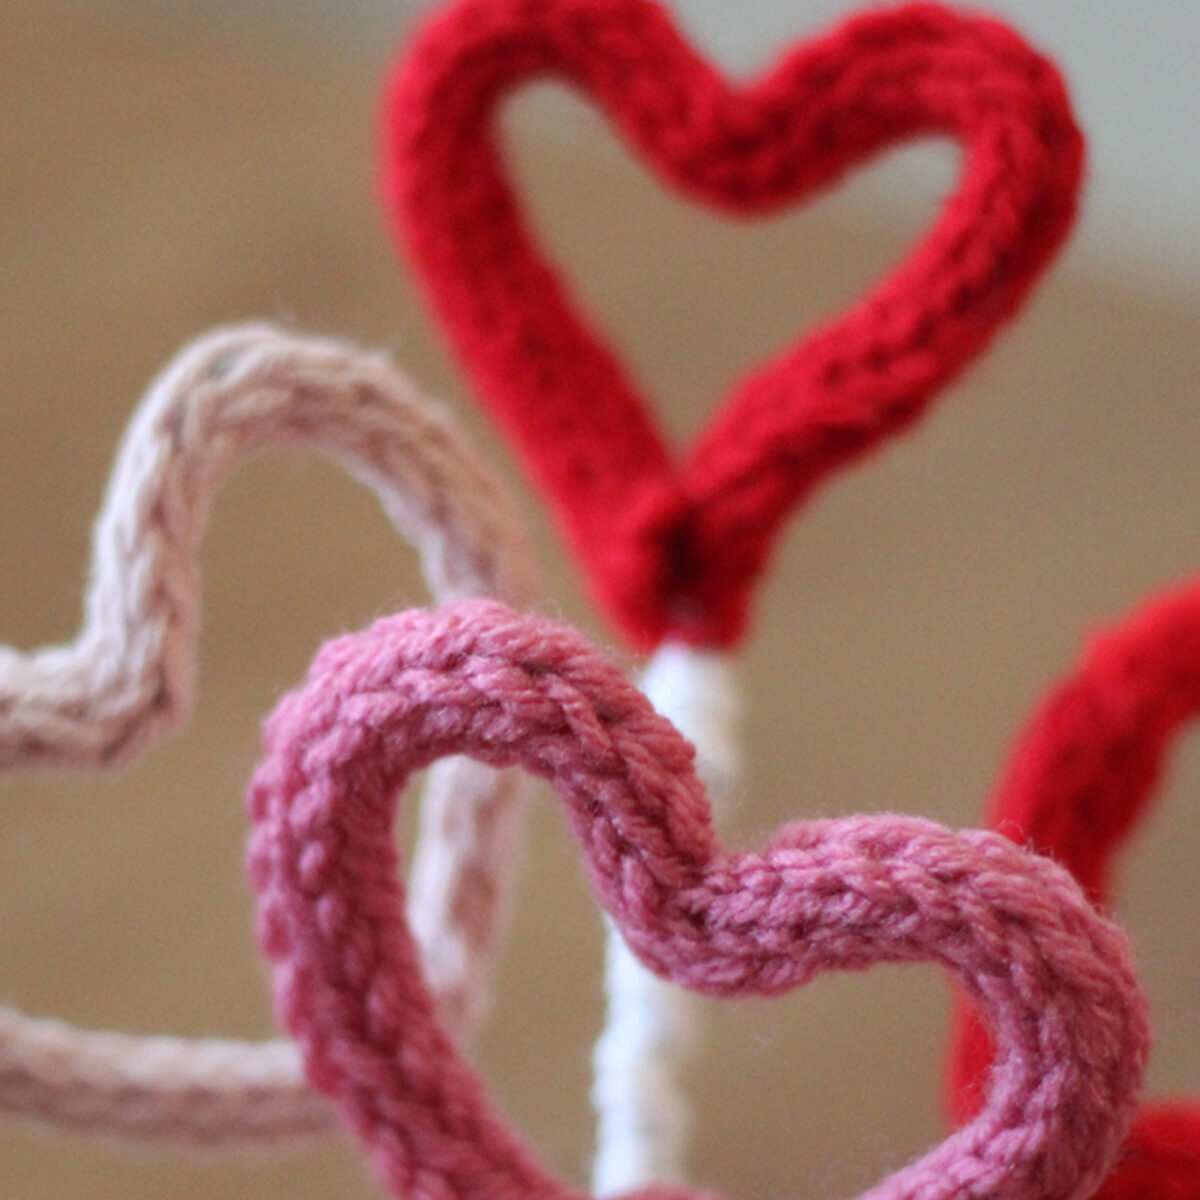 Knitted heart shaped i-cords in pink, red, and white yarn colors.